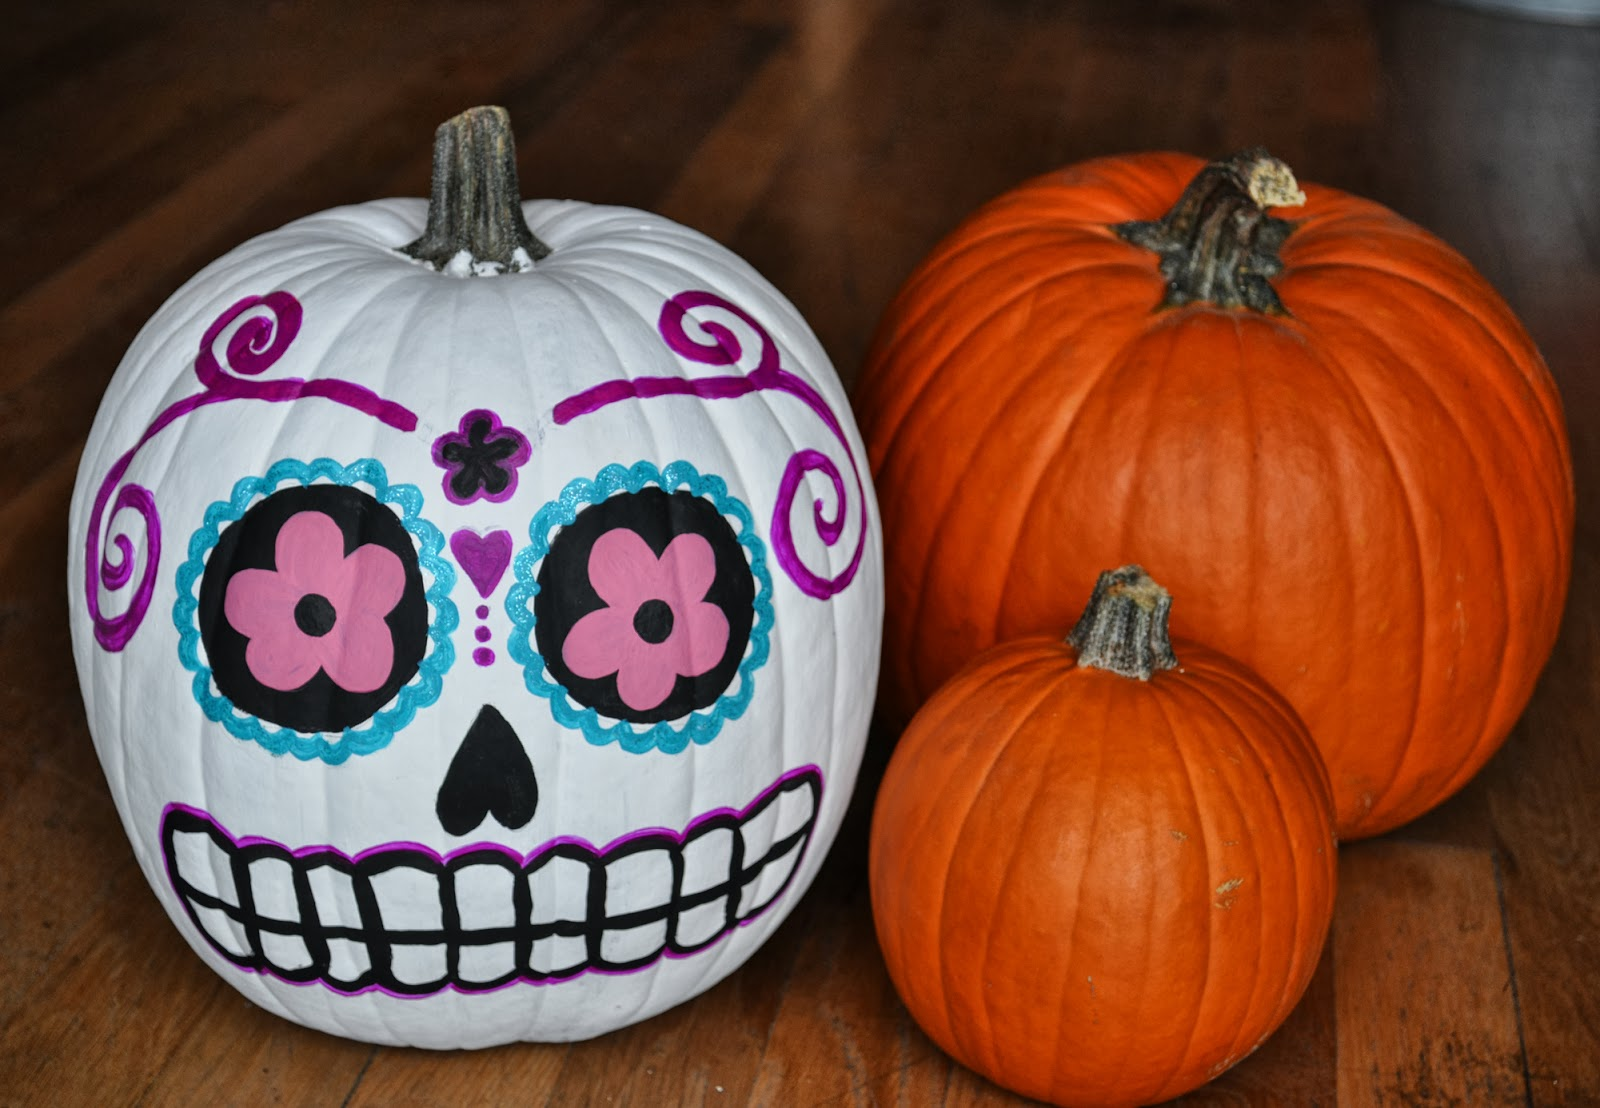 Artelexia day of the dead diy 18 sugar skull pumpkins Easy pumpkin painting patterns